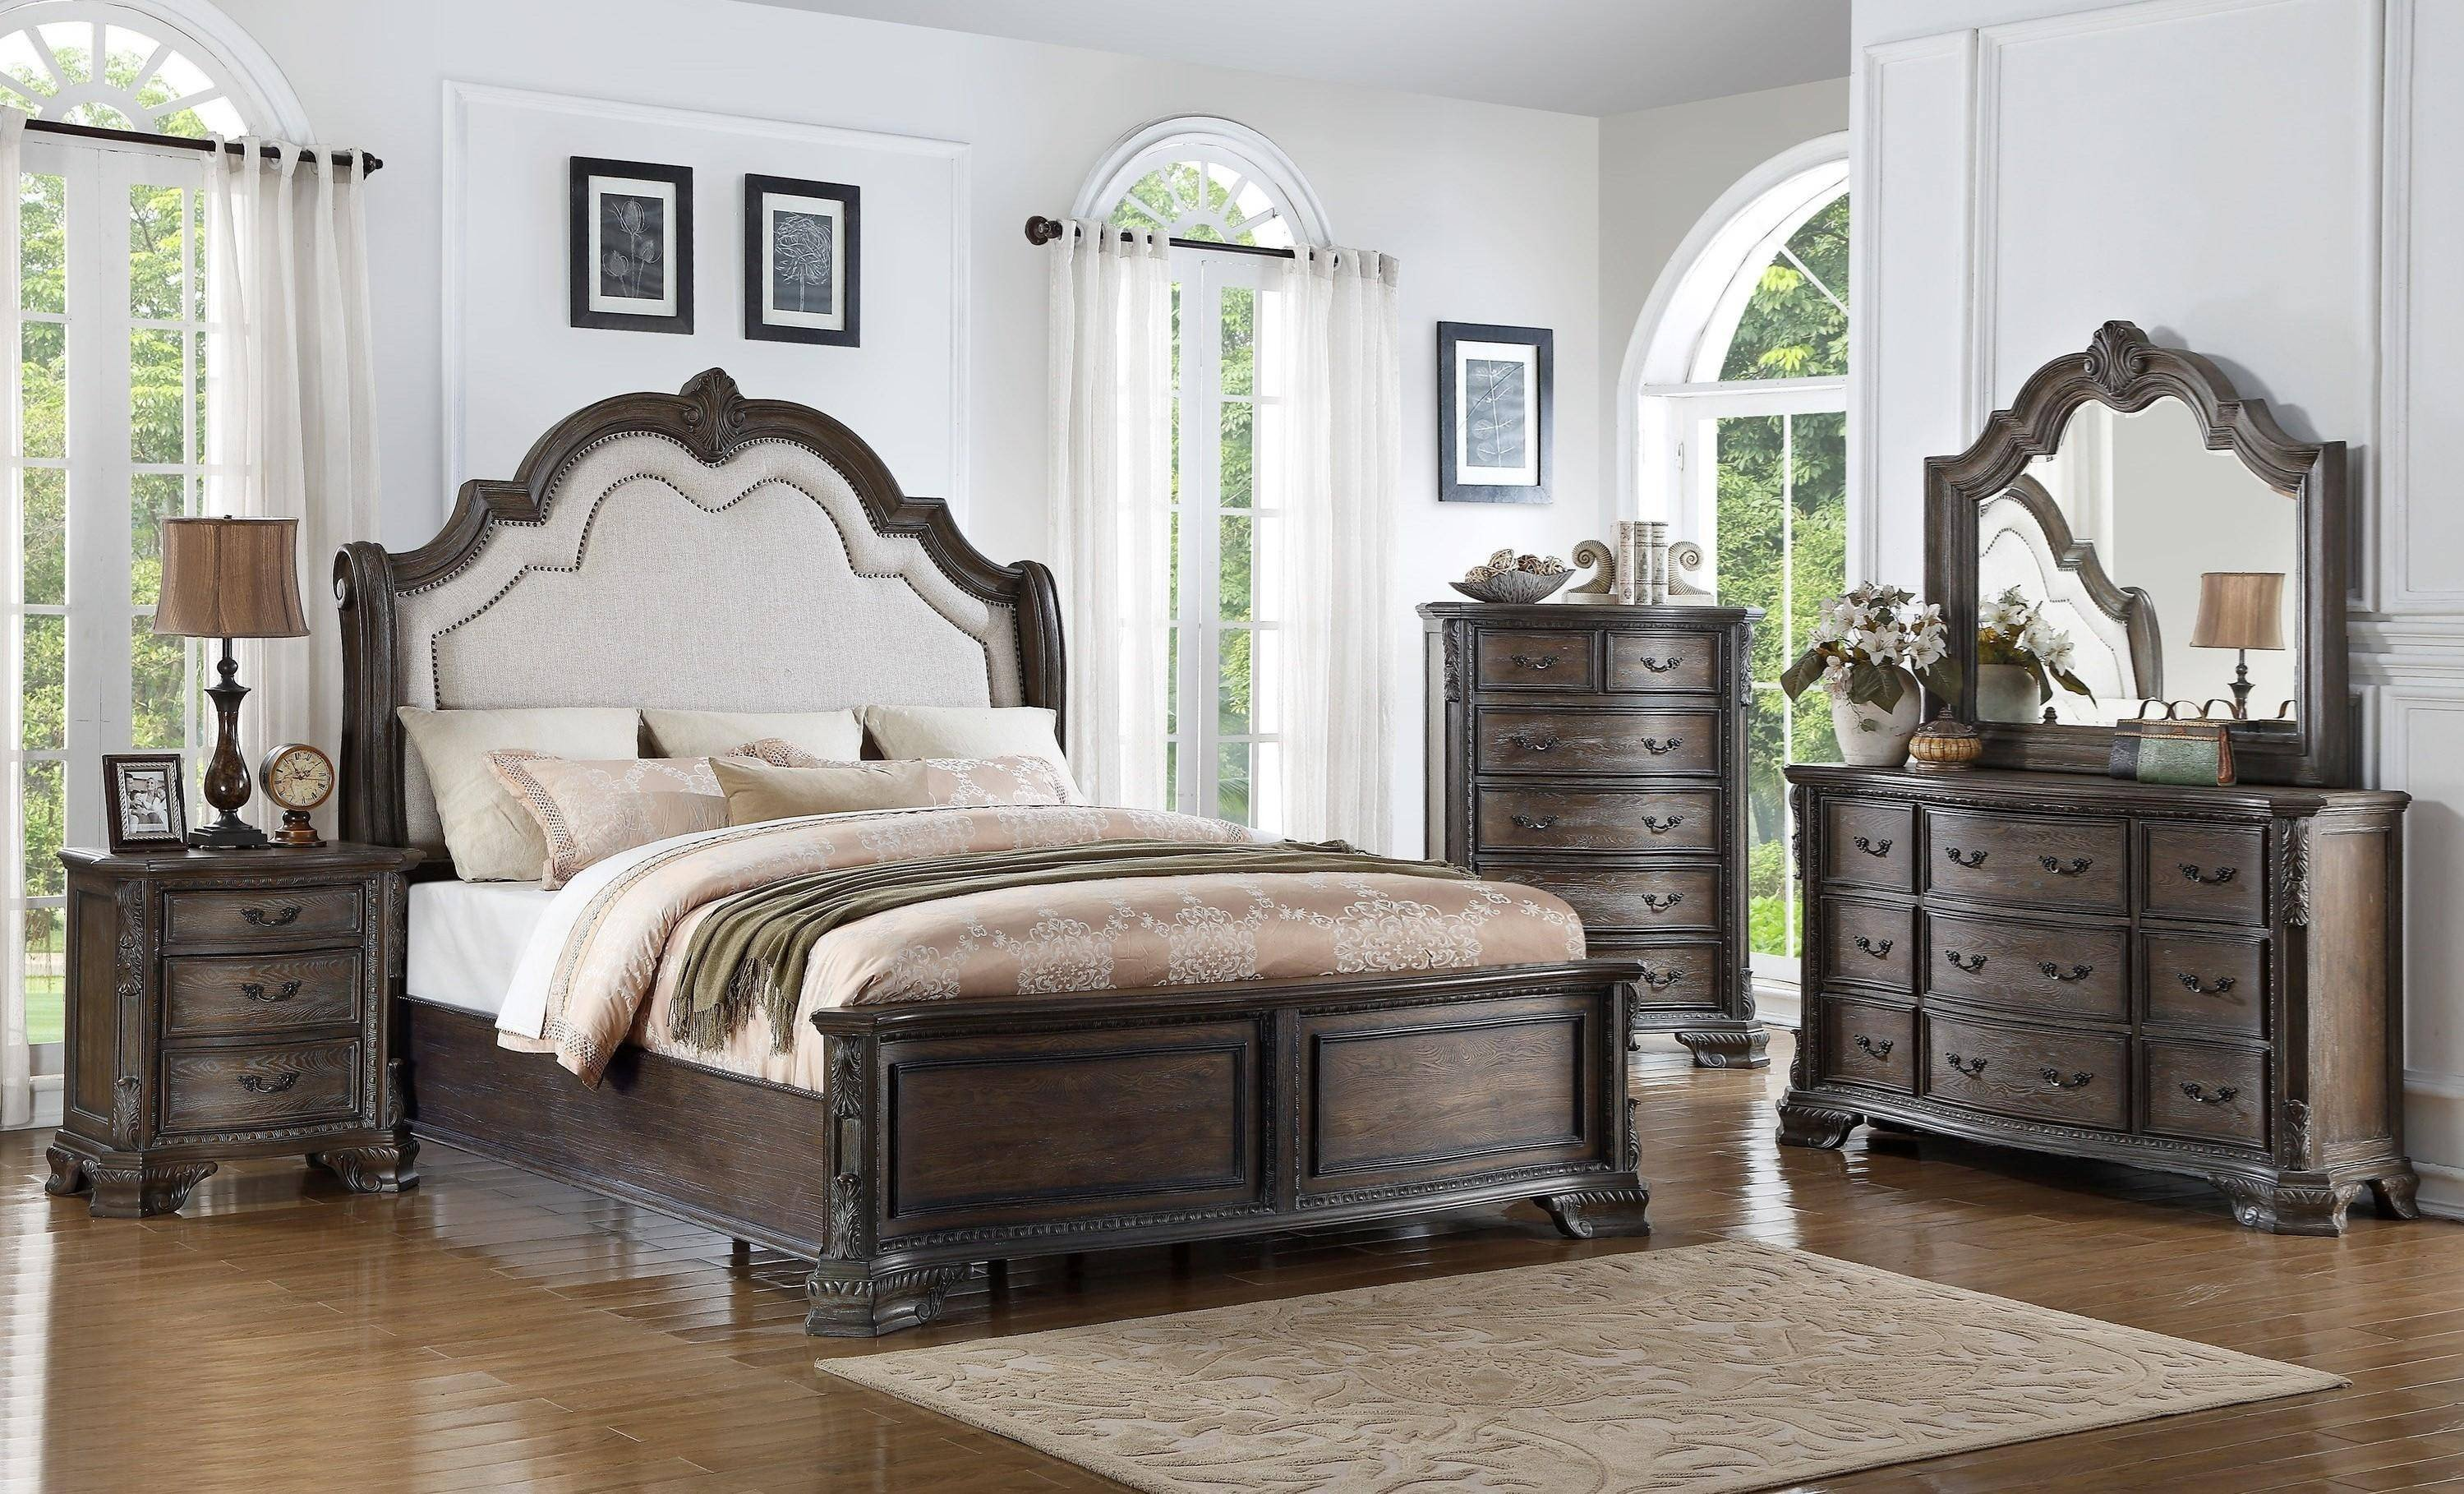 California King Size Bedroom Furniture Set Fresh Crown Mark B1120 Sheffield Queen Panel Bed In Gray Fabric